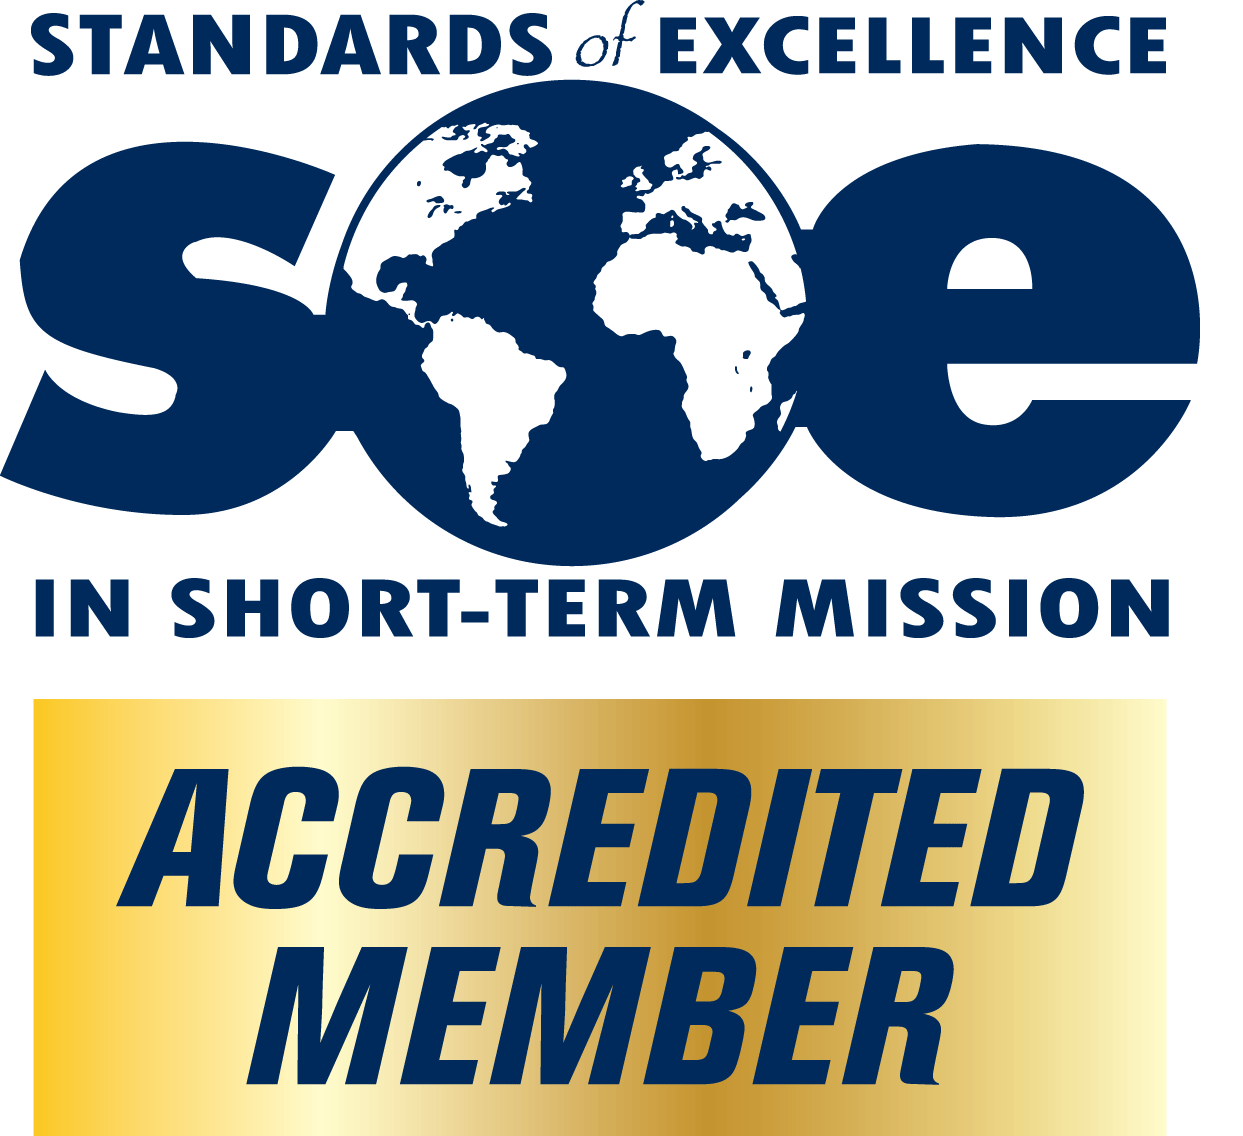 Award for being an accredited member of the Standards of Excellence in Short-Term Missions